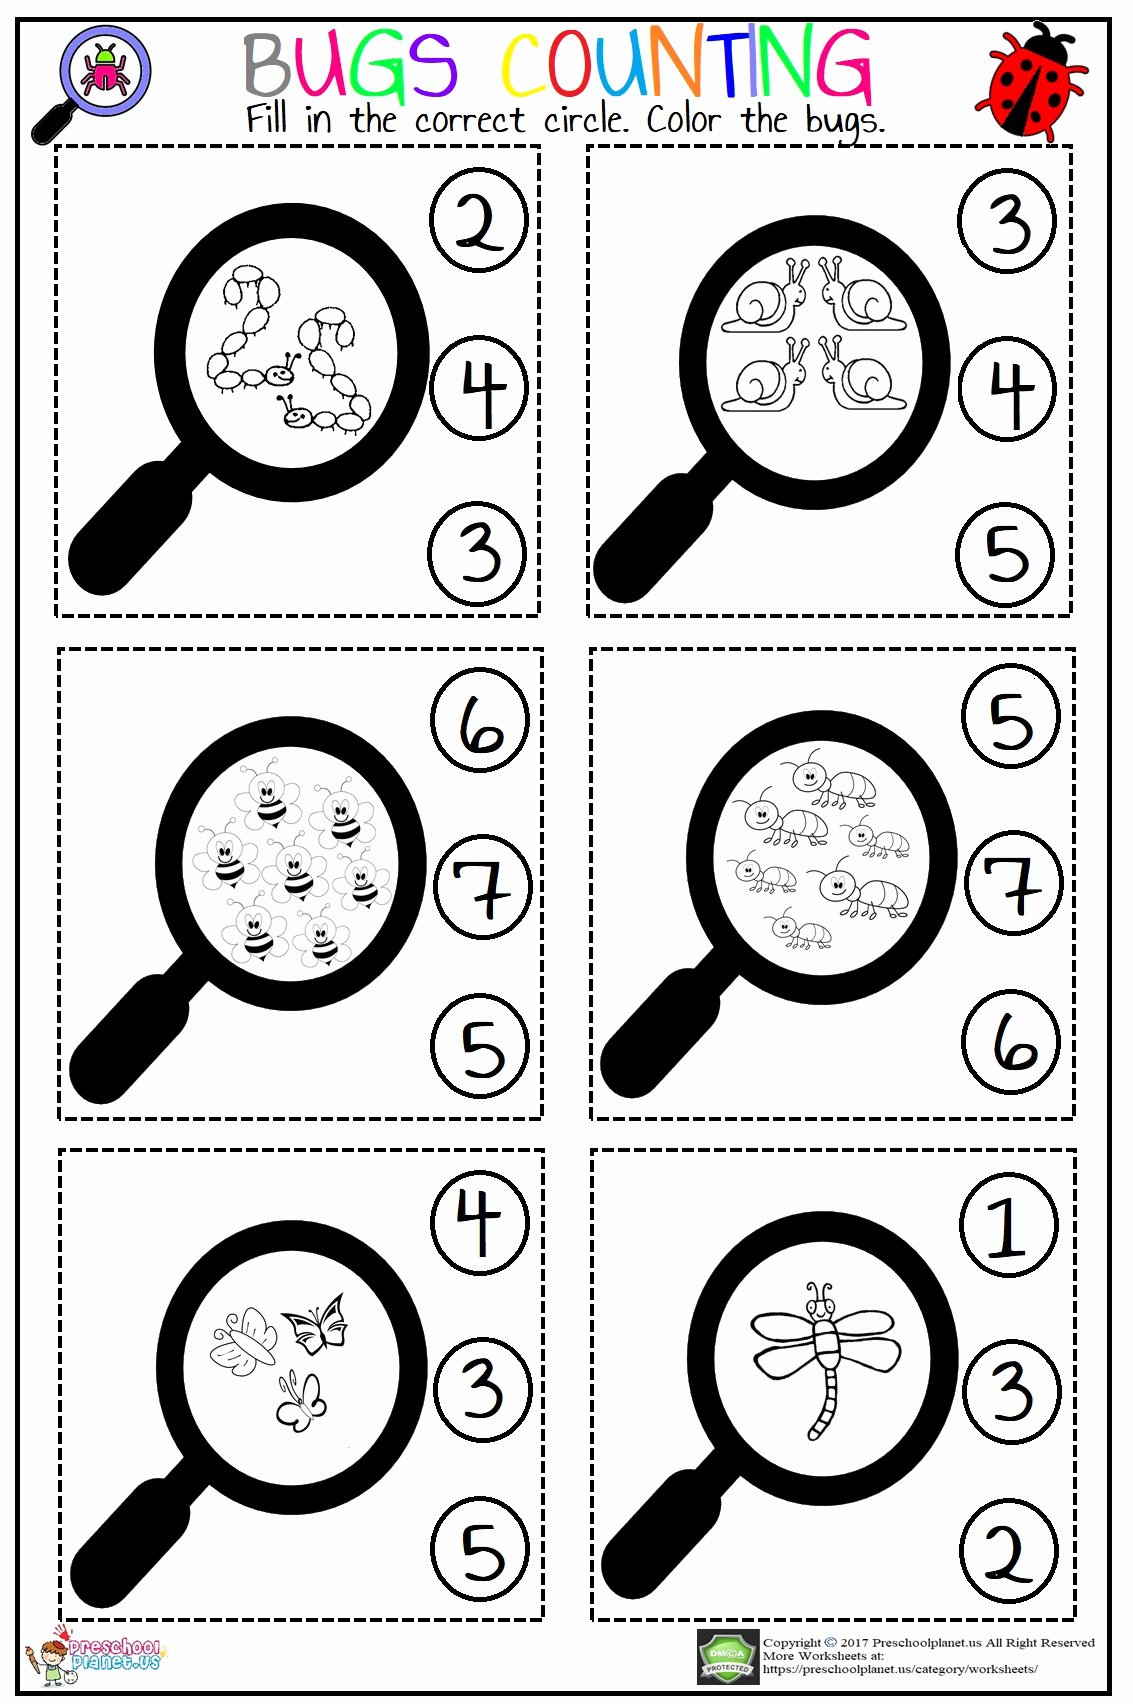 Counting Bugs Worksheets for Preschoolers Free Bugs Counting Worksheet – Preschoolplanet